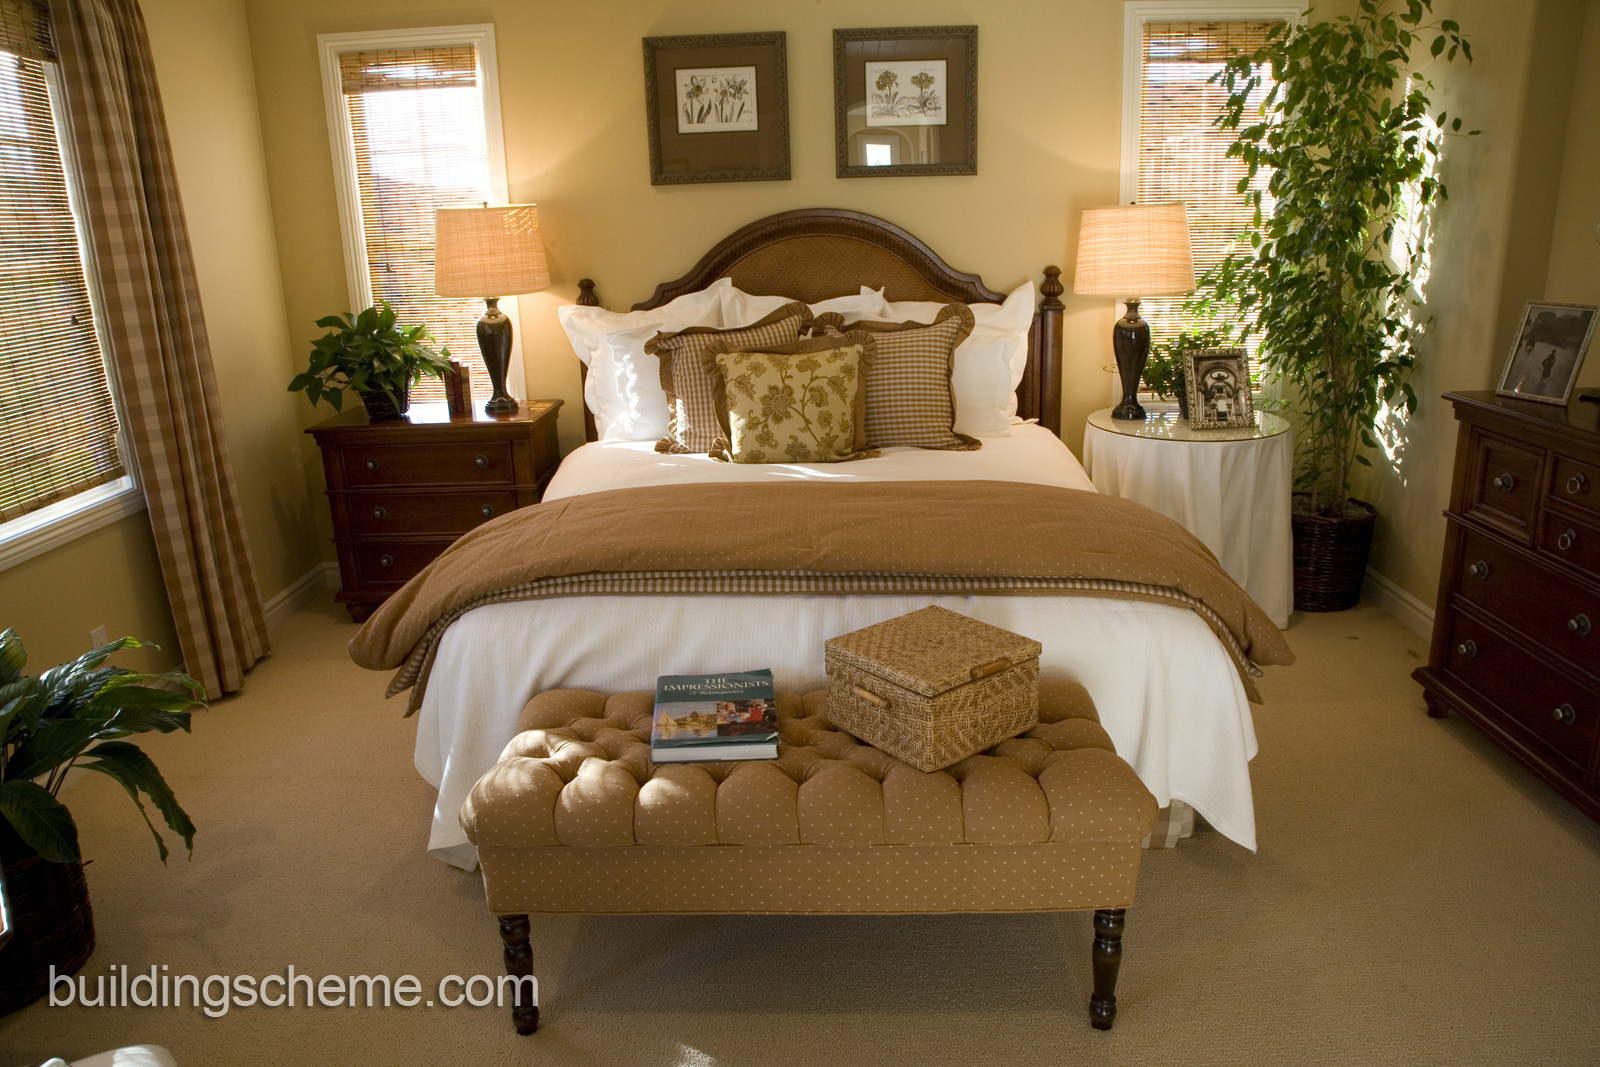 Elegant bedroom ideas decorating 27 decor ideas for Decorating my bedroom ideas